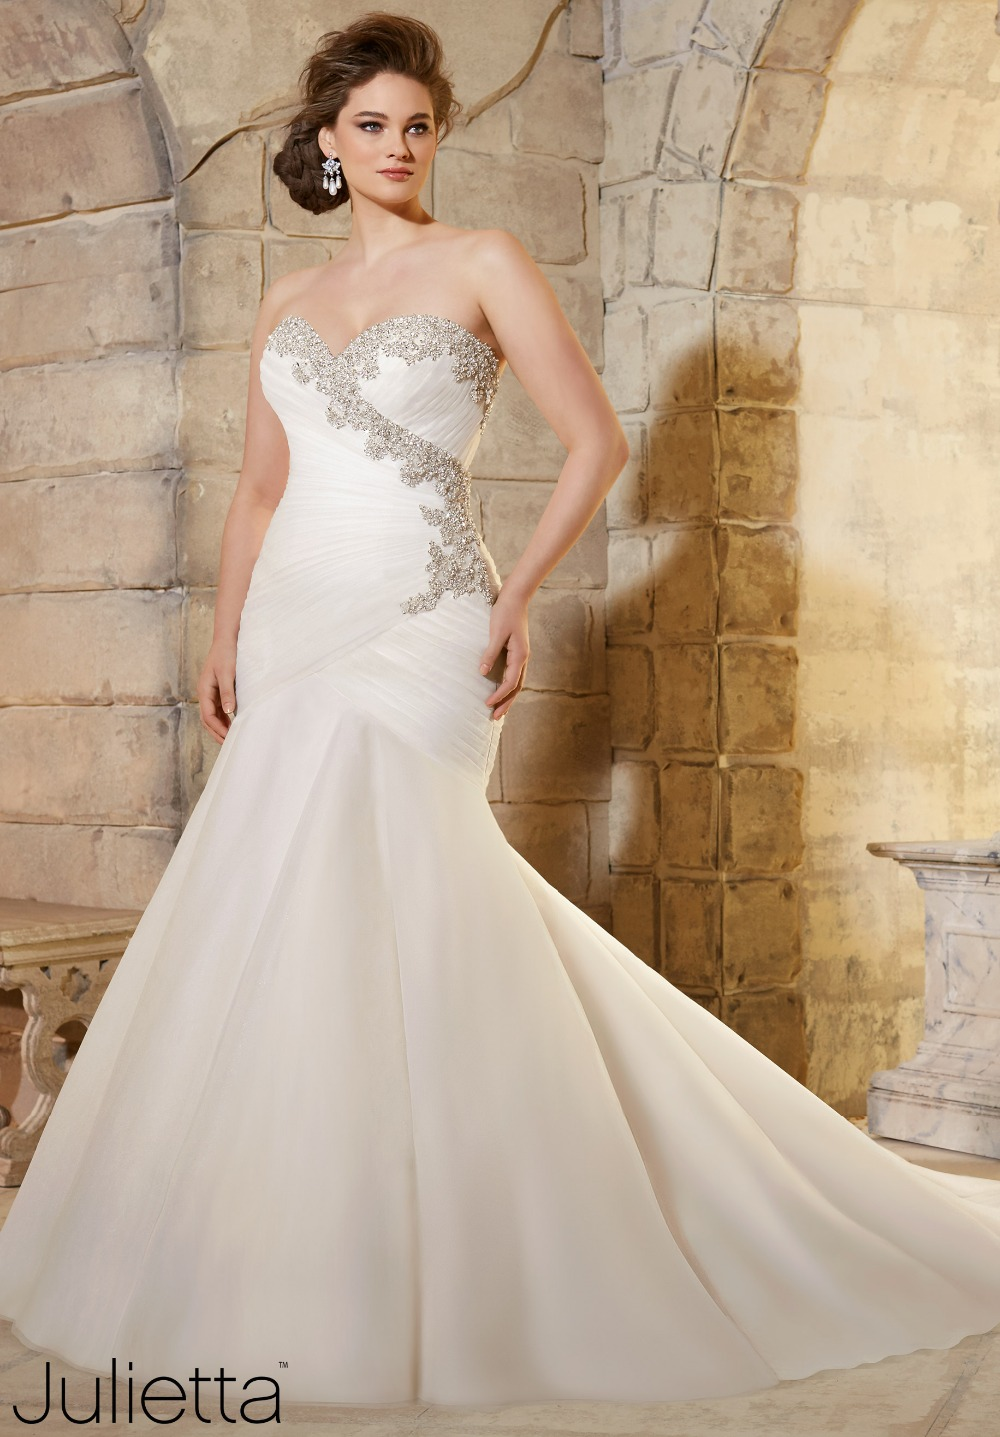 Plus size wedding dress 2016 sweetheart neckline for Wedding dress plus size